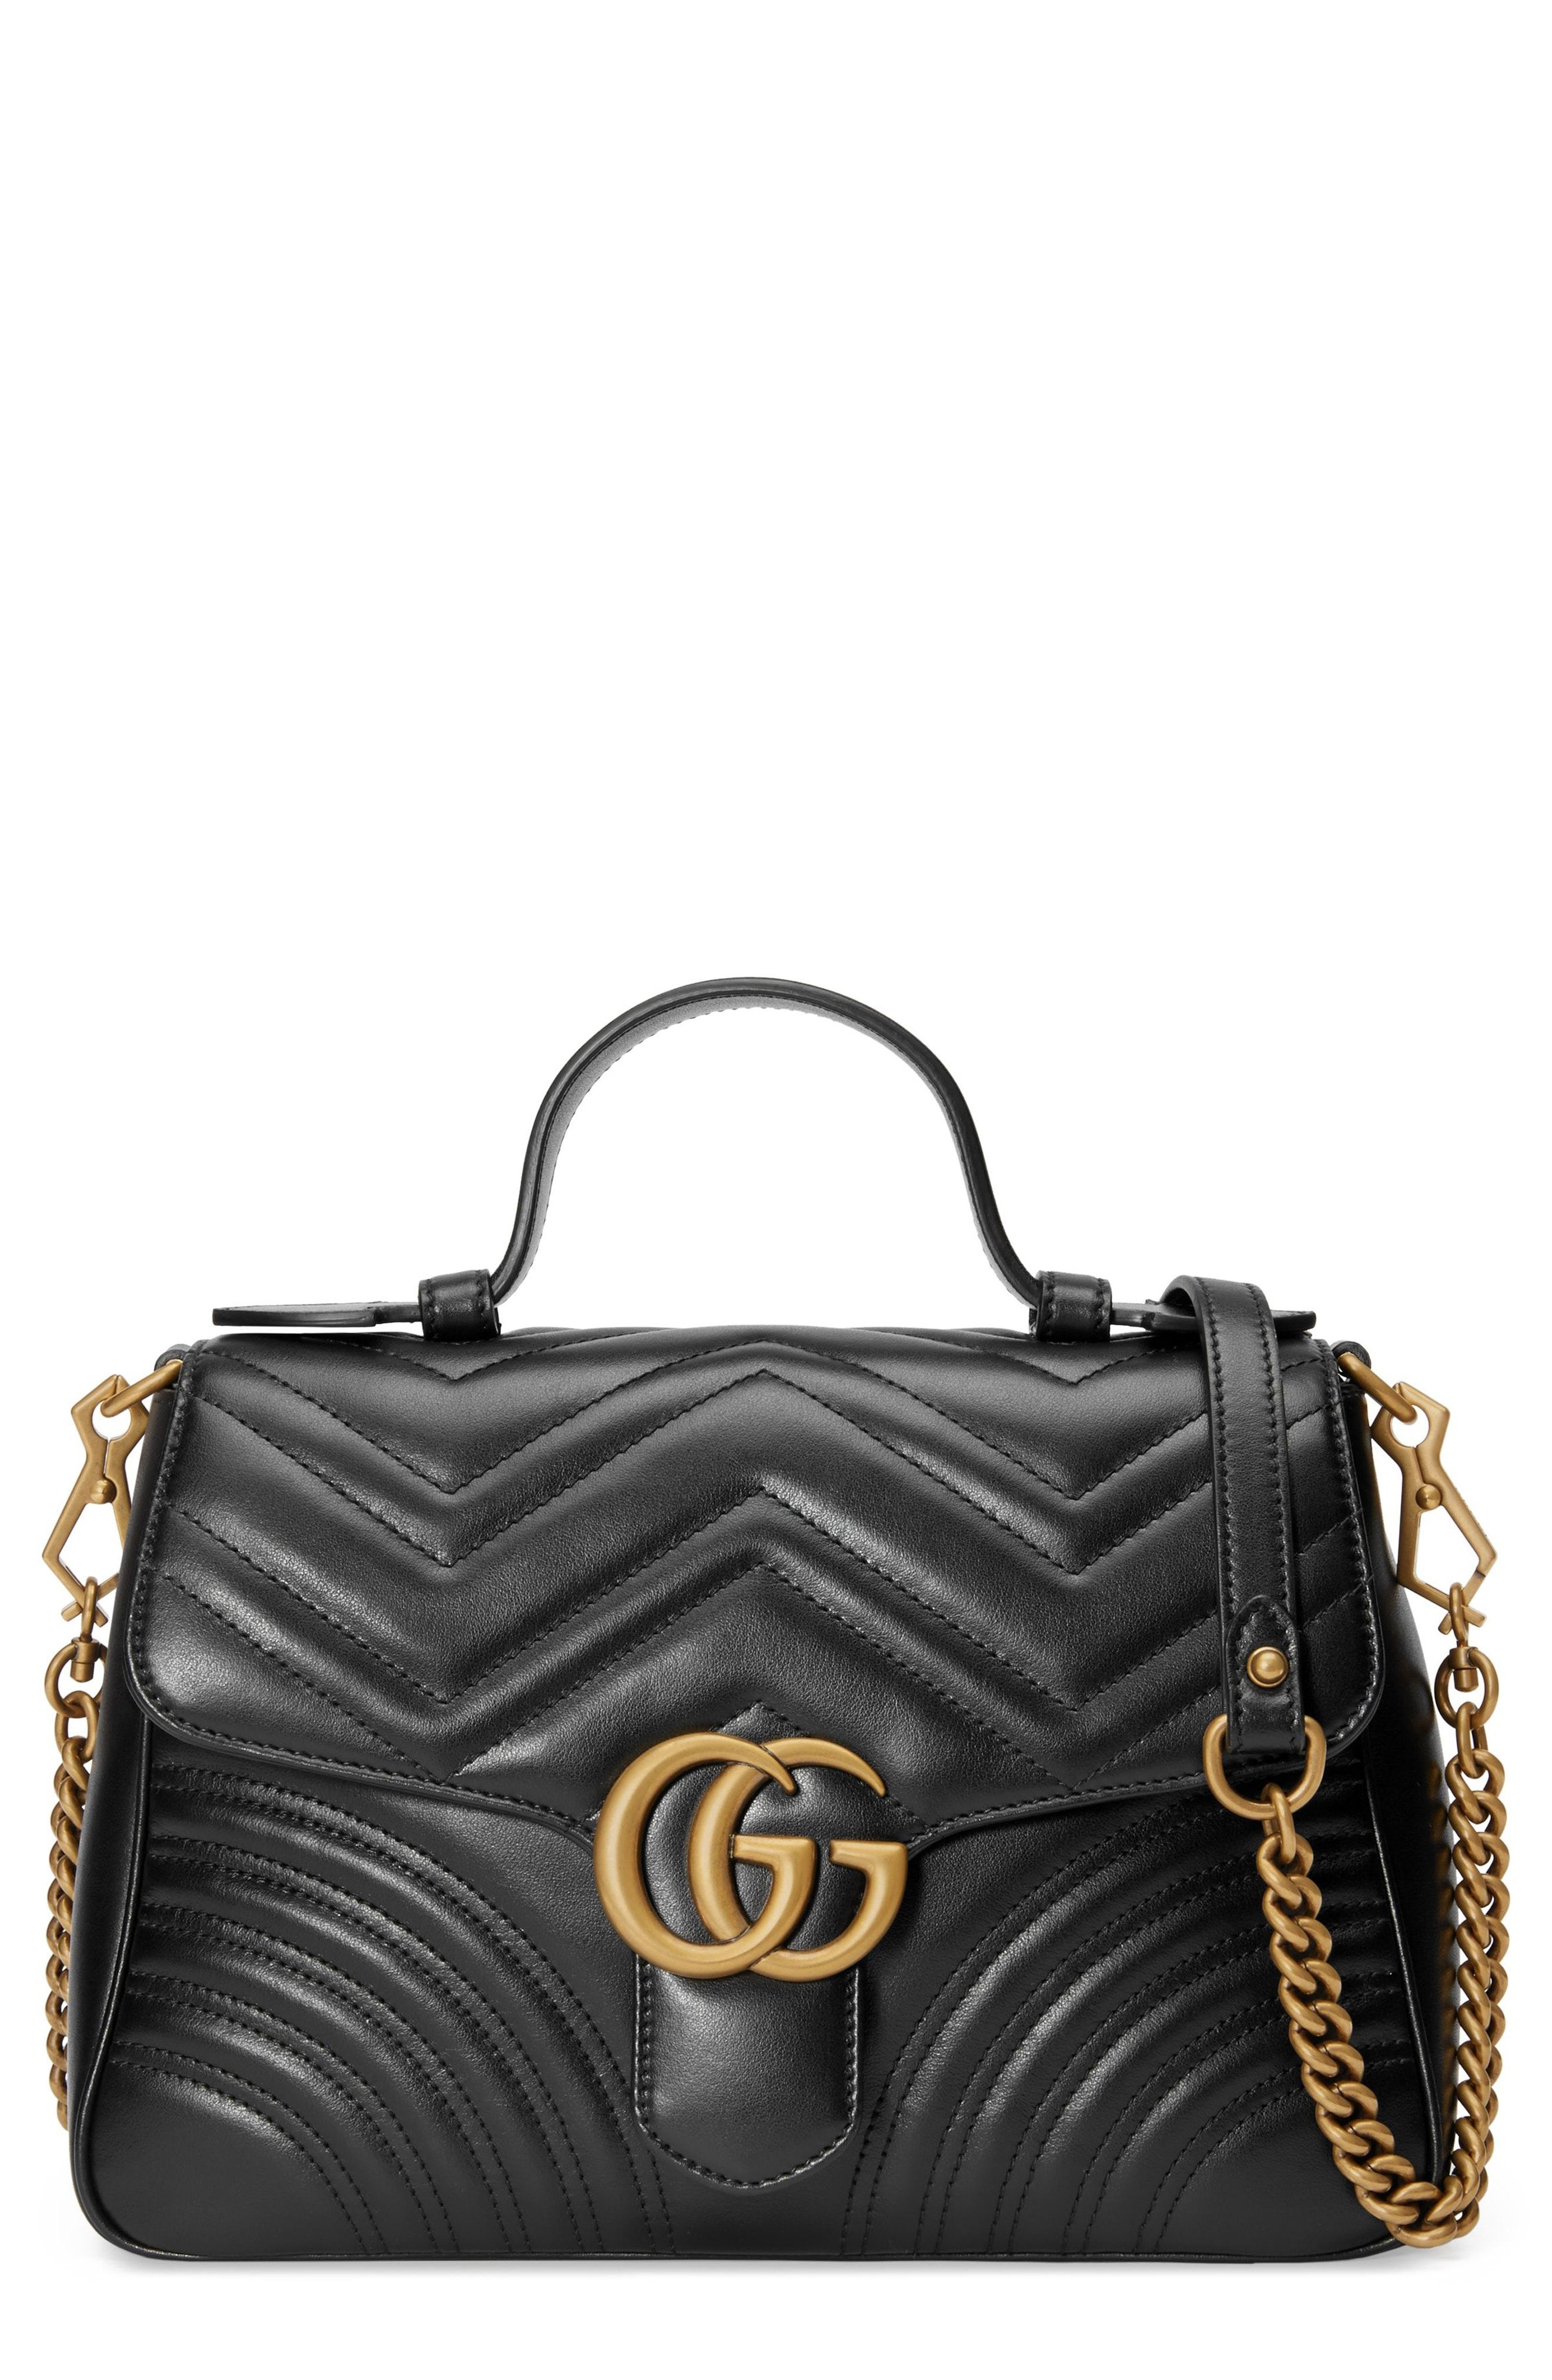 Gucci Small GG Marmont 2.0 Matelassé Leather Top Handle Bag available at   Nordstrom 86def2667e4